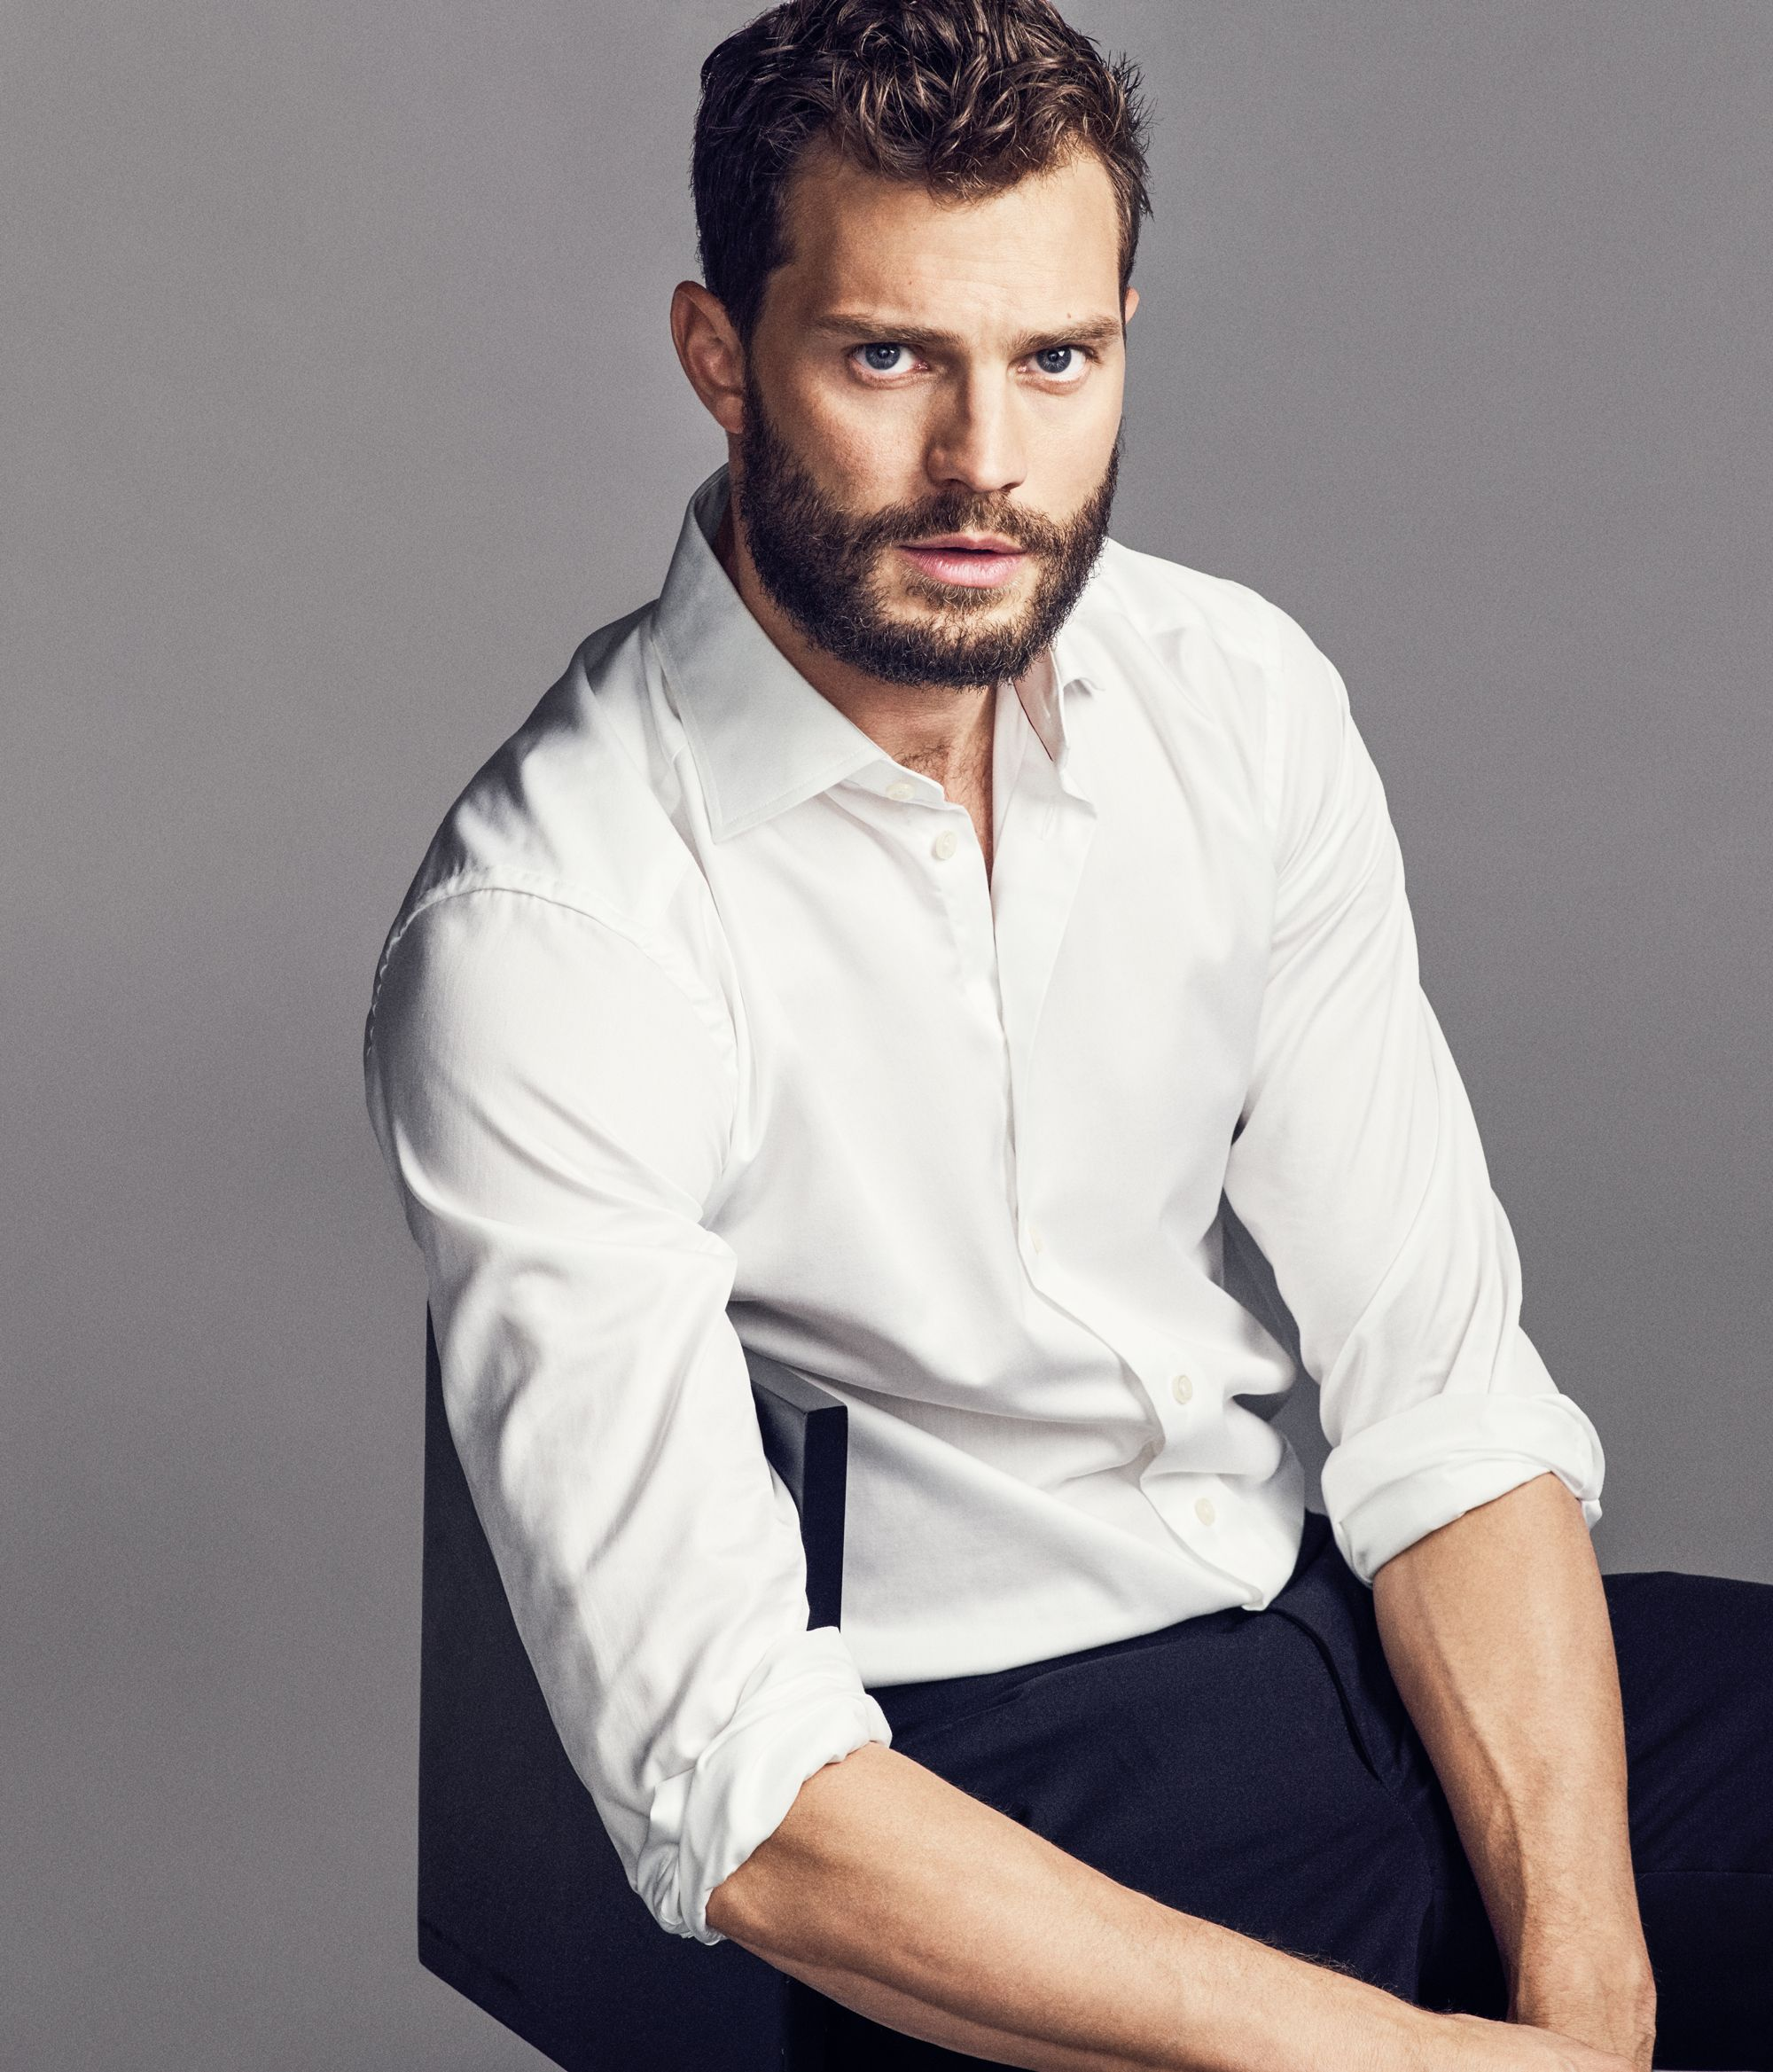 Fifty Shades Star Jamie Dornan Talks Stripping Down and